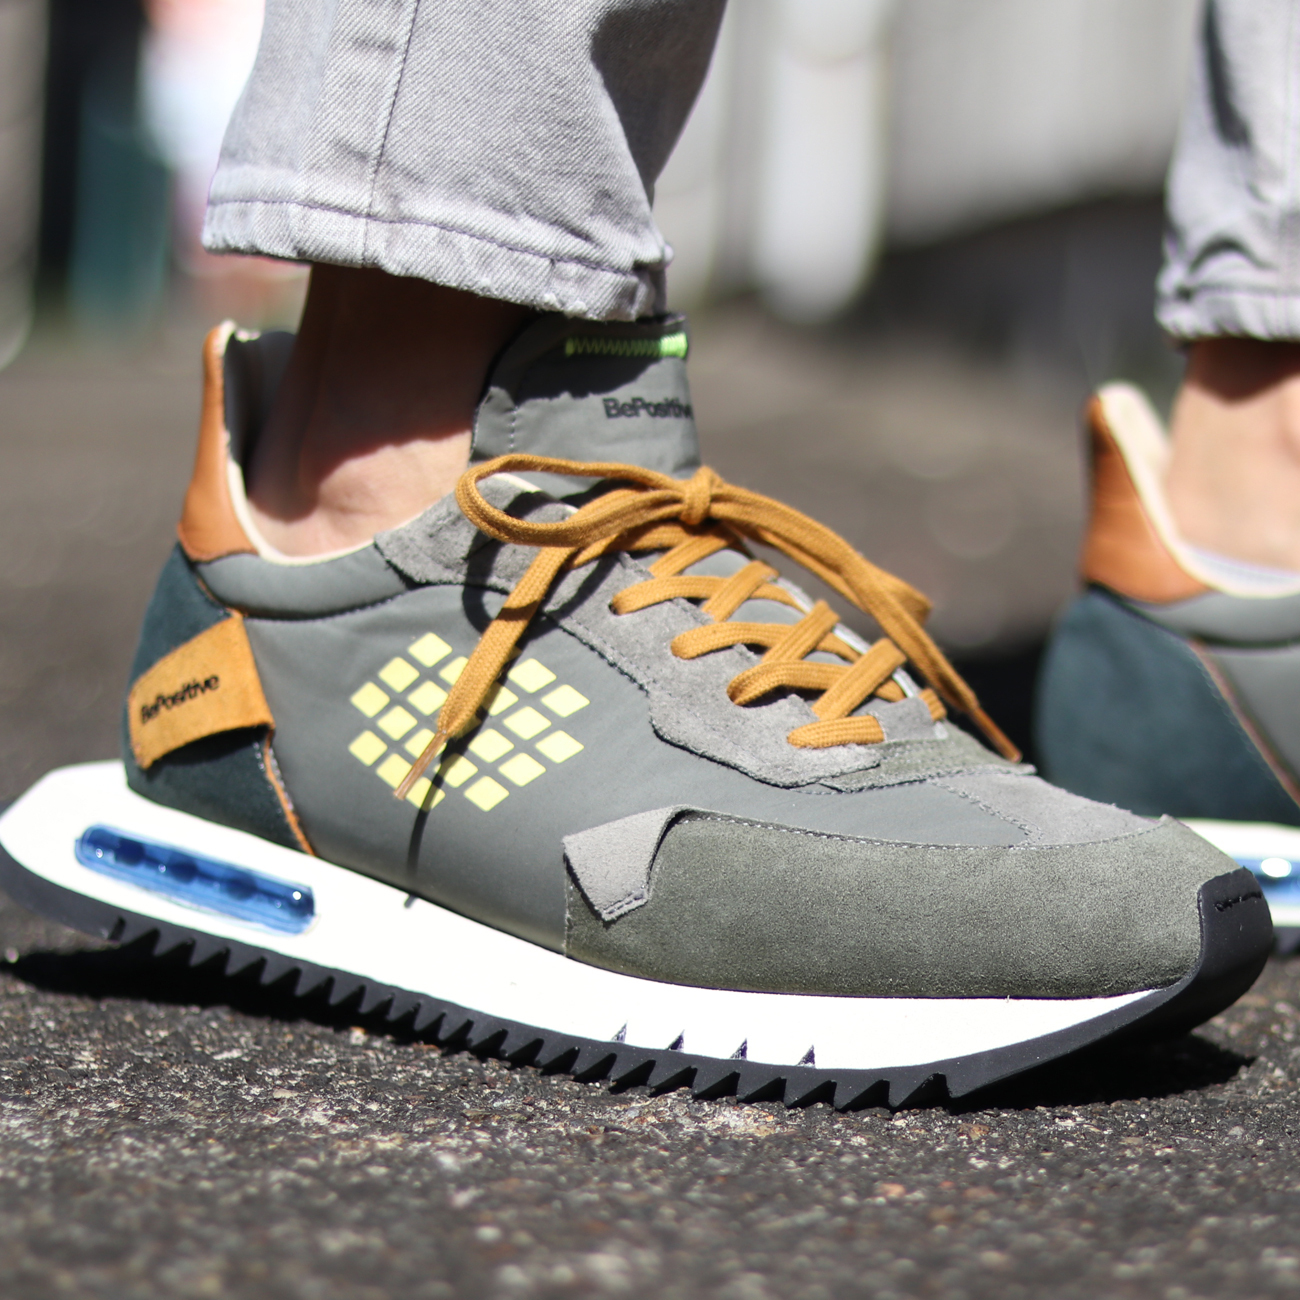 Be Positive/ビーポジティブ Space Run Military Green